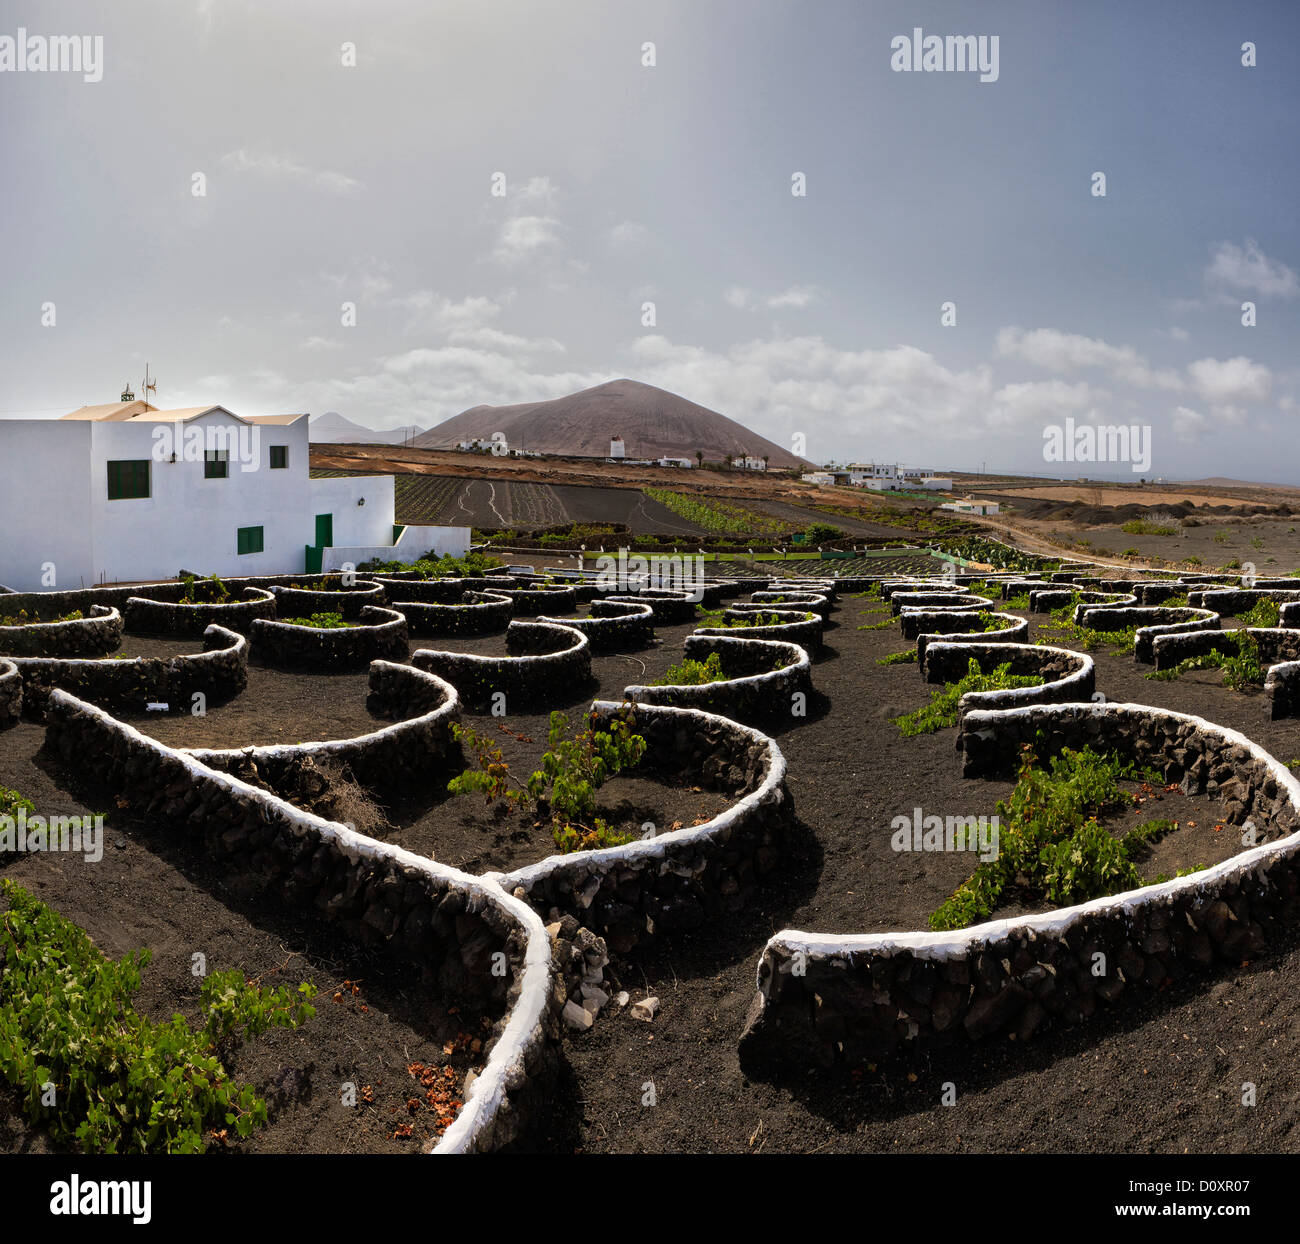 Spain, Lanzarote, Tiagua, Vineyard, bushes, lava pits, city, village, summer, mountains, hills, Canary Islands, - Stock Image